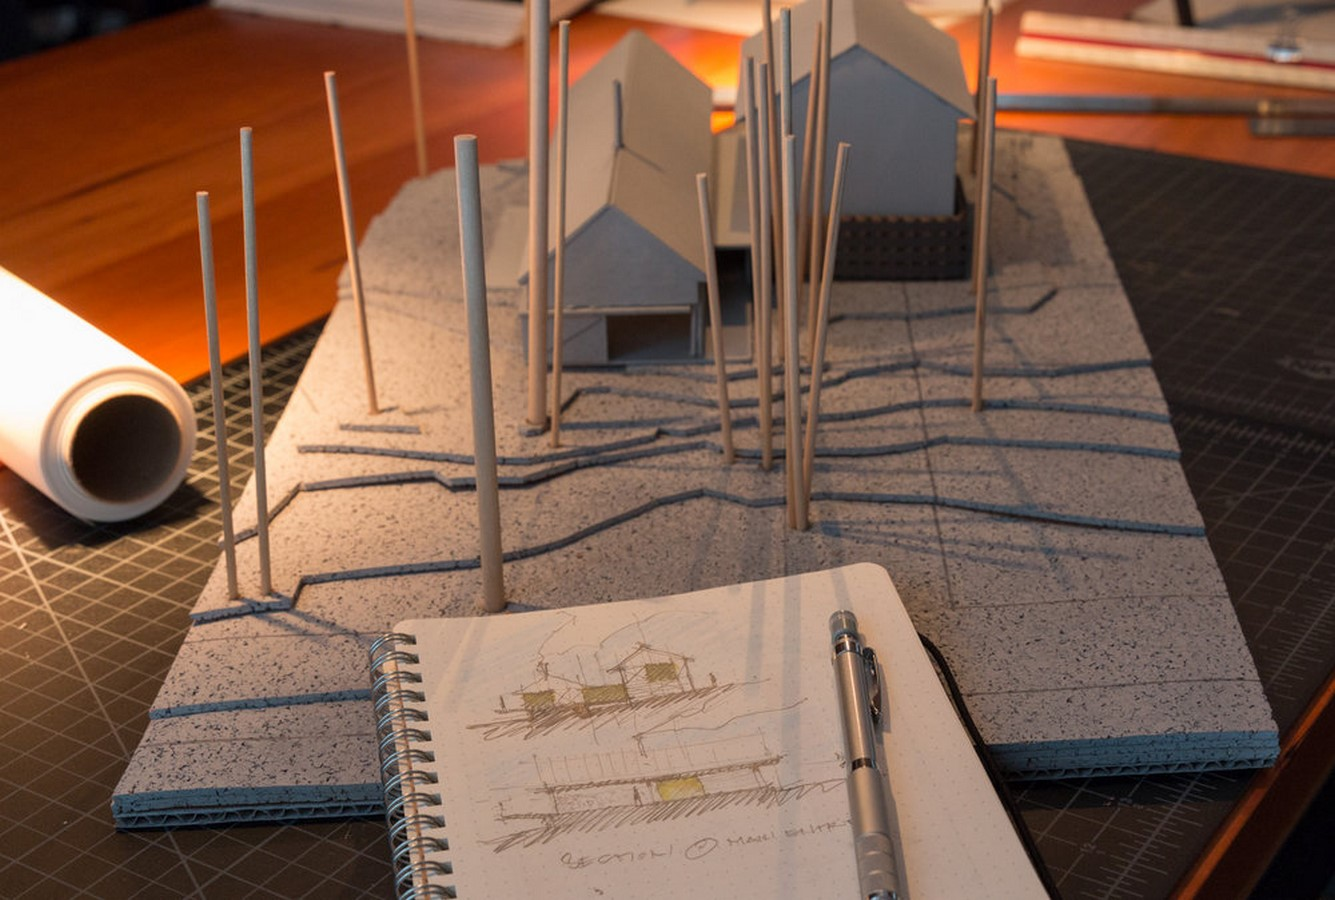 10 youtubers to watch for architectural model making-30X40 Design Workshop - Sheet3